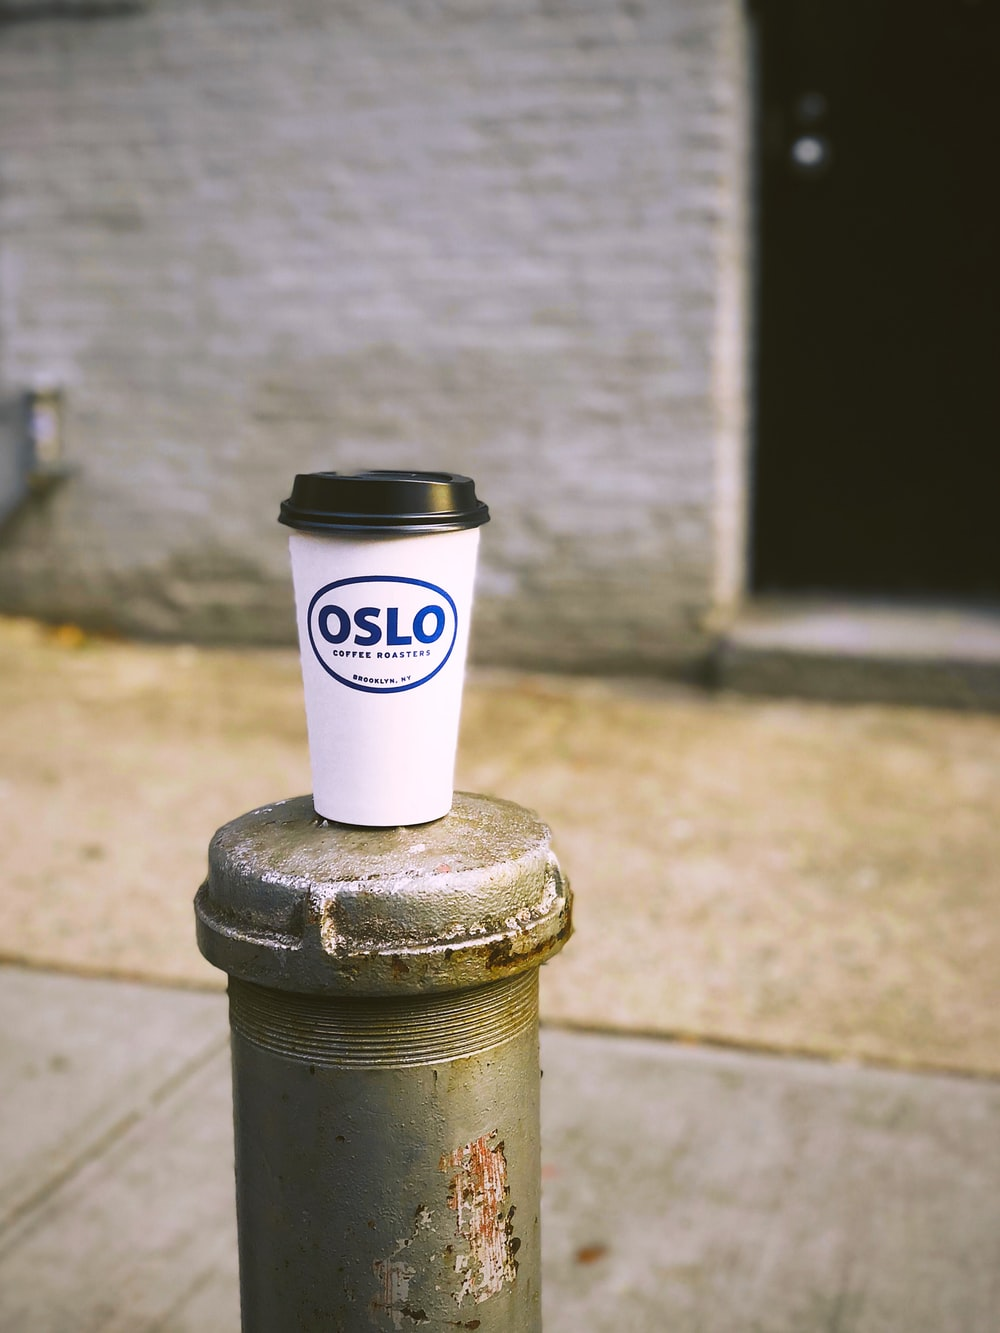 Oslo disposable cup on post near door